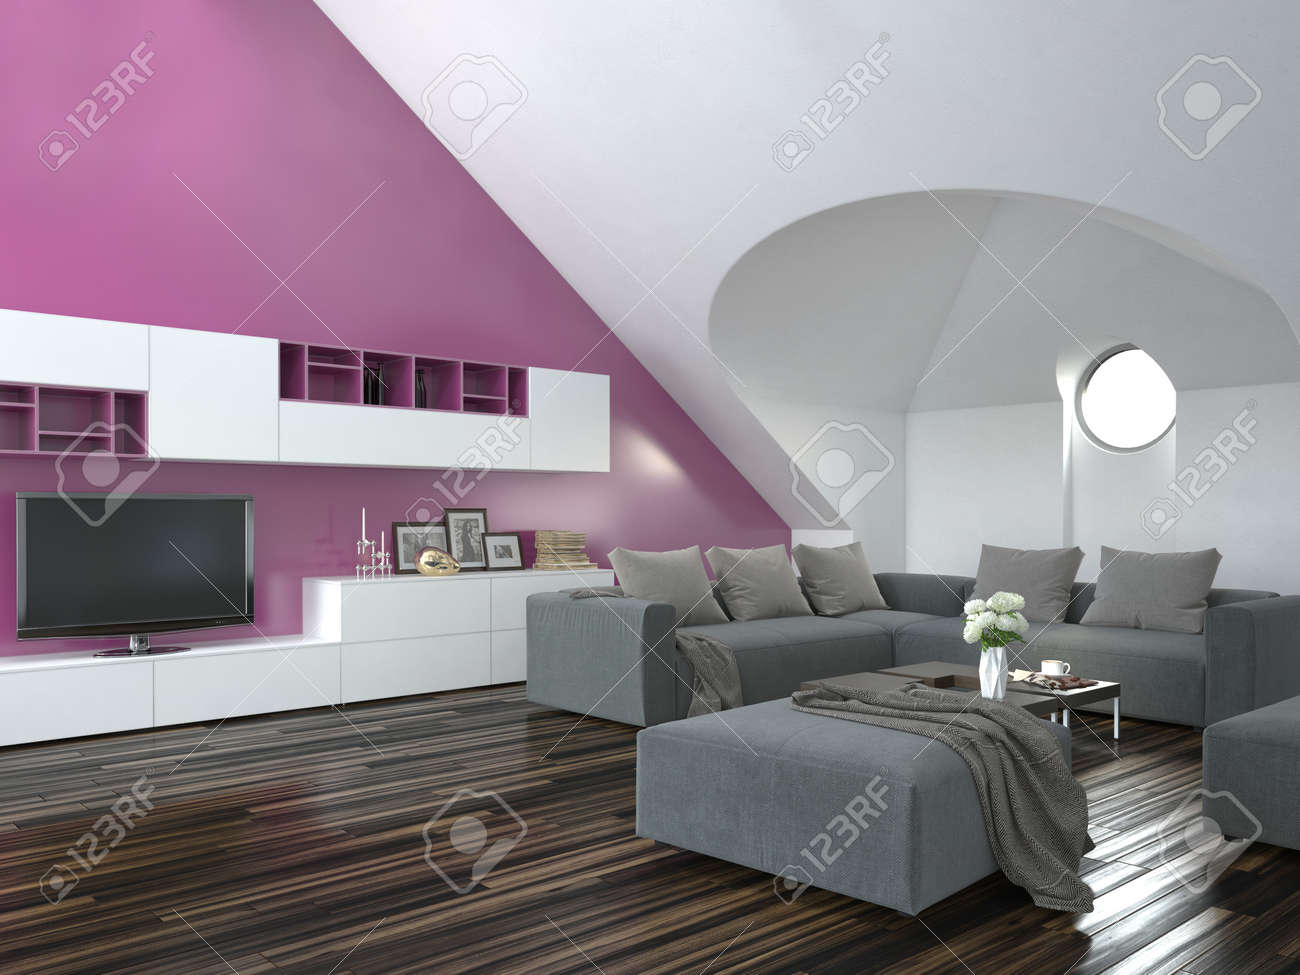 http://previews.123rf.com/images/skdesign/skdesign1406/skdesign140600379/29559509-Modern-loft-living-room-interior-with-a-sloping-ceiling-and-purple--Stock-Photo.jpg